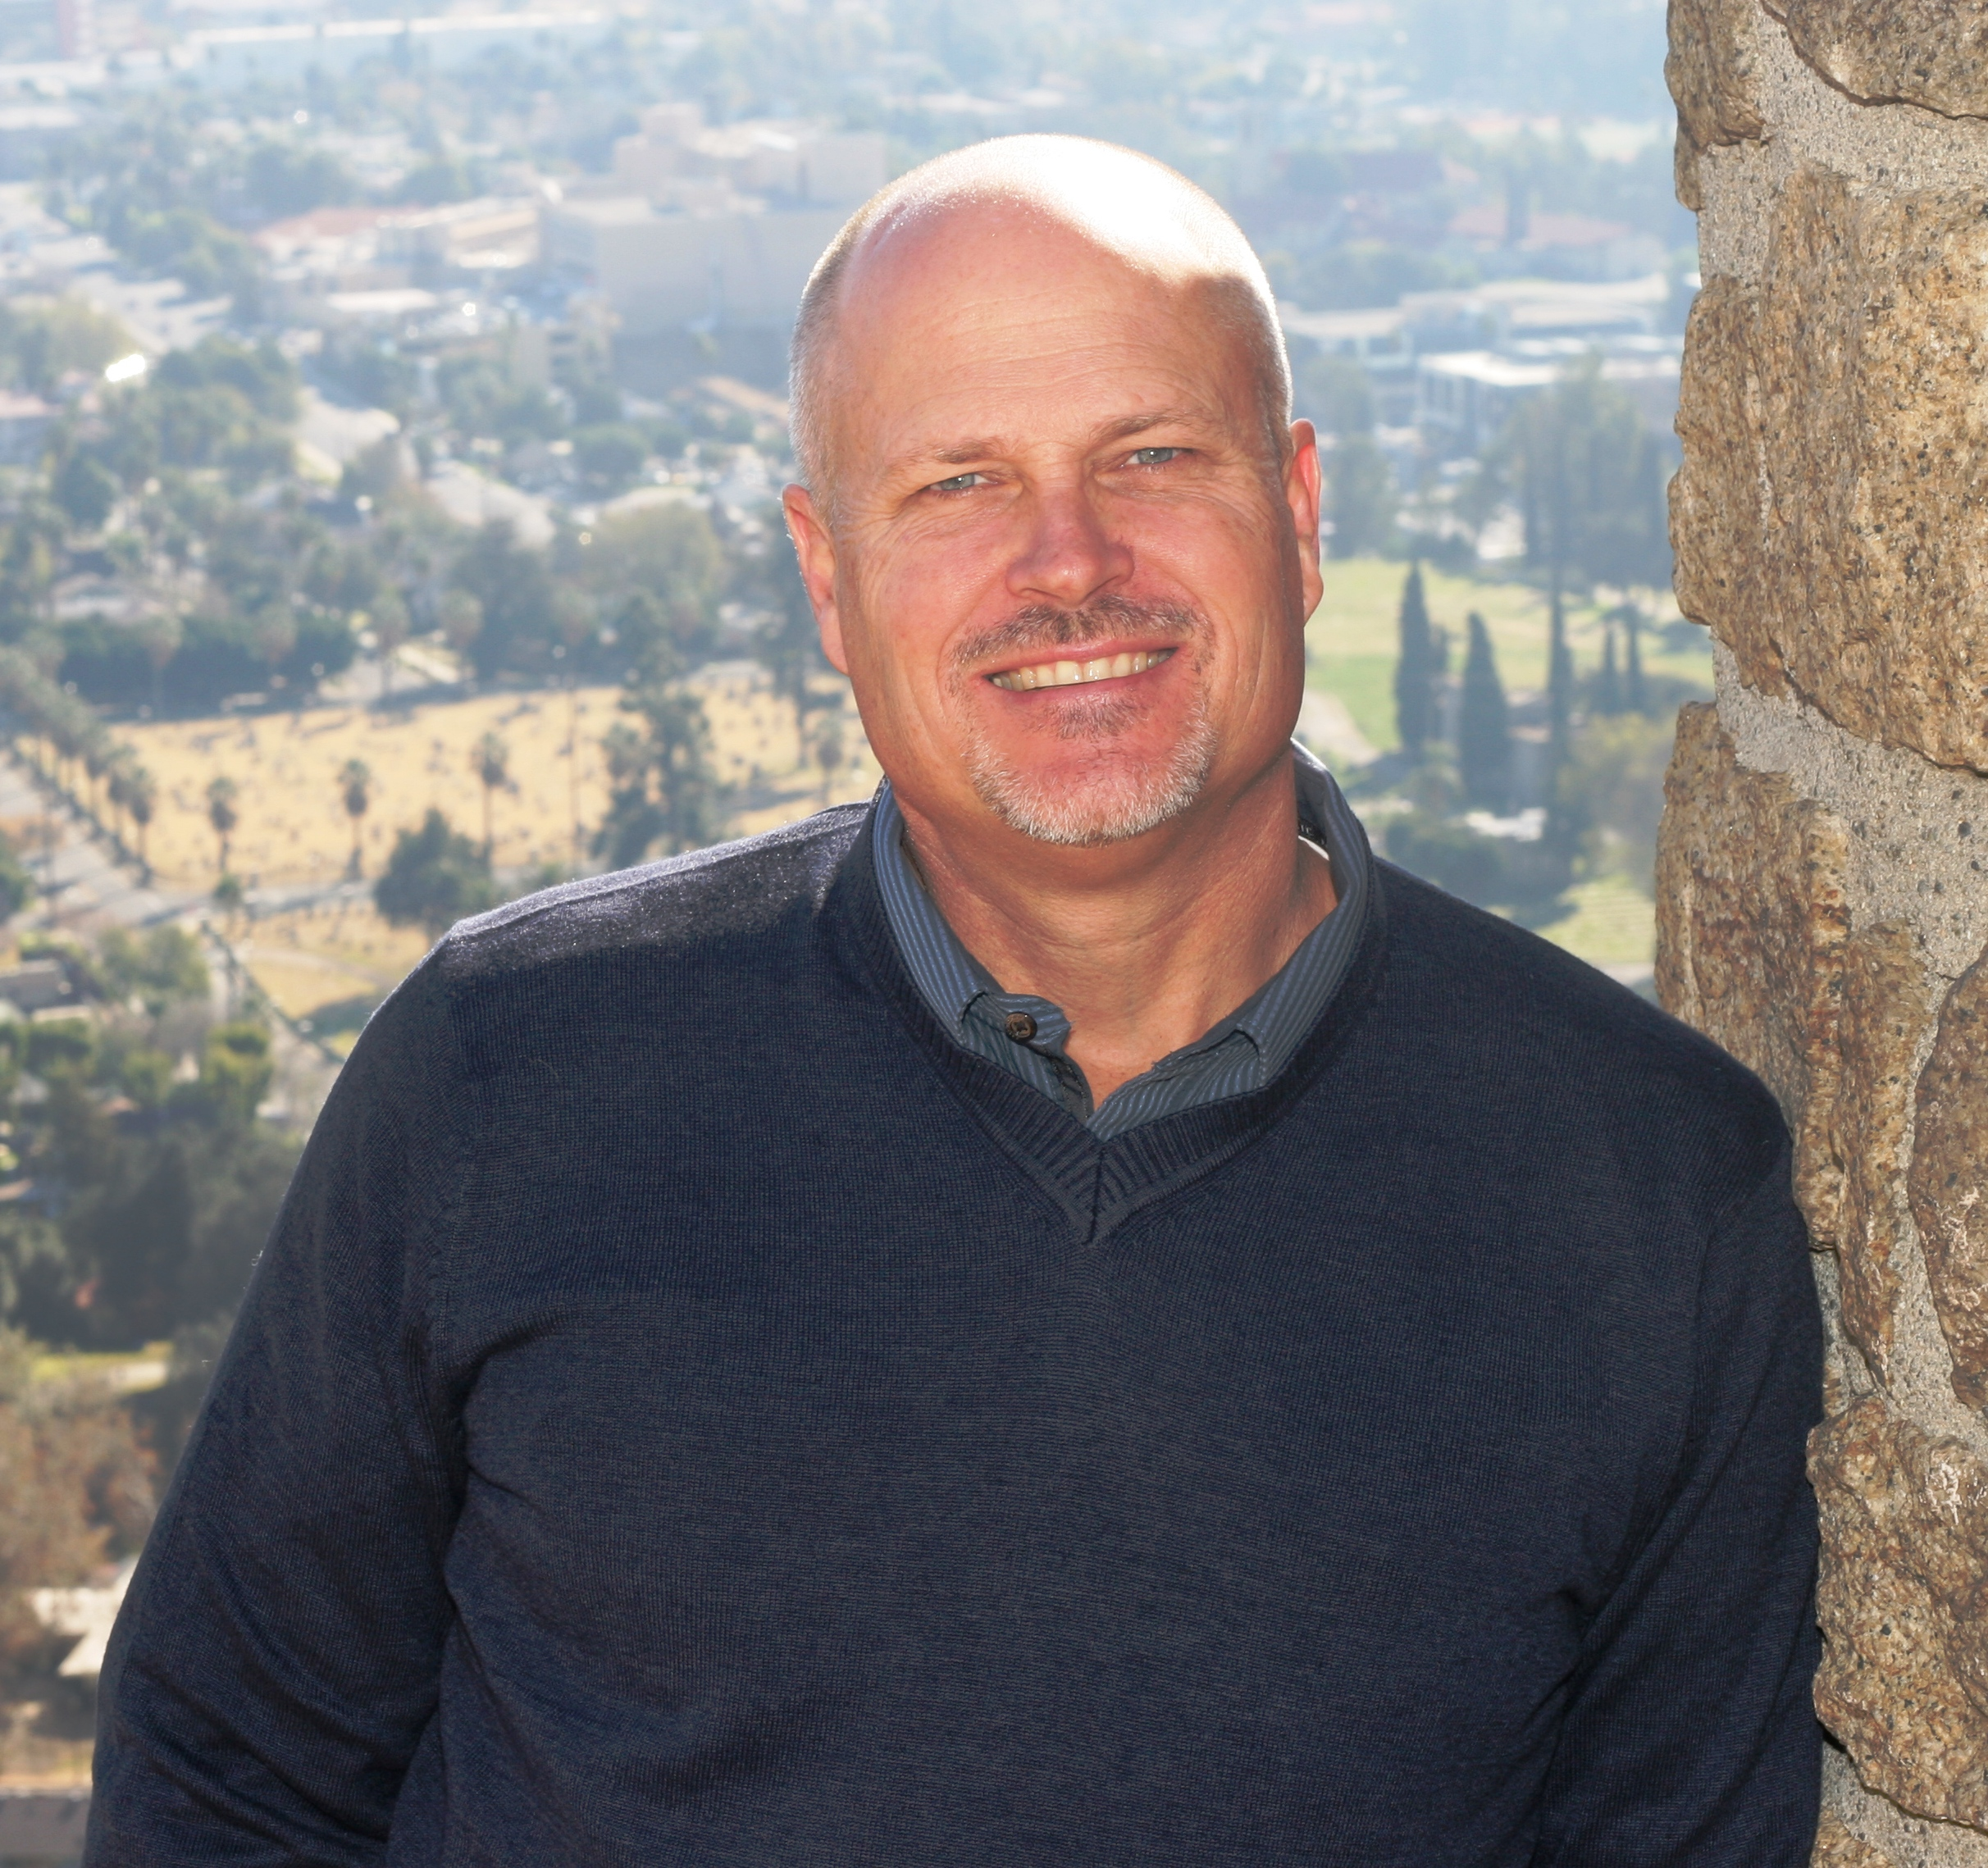 Todd Todd is a licensed real estate agent in Riverside CA